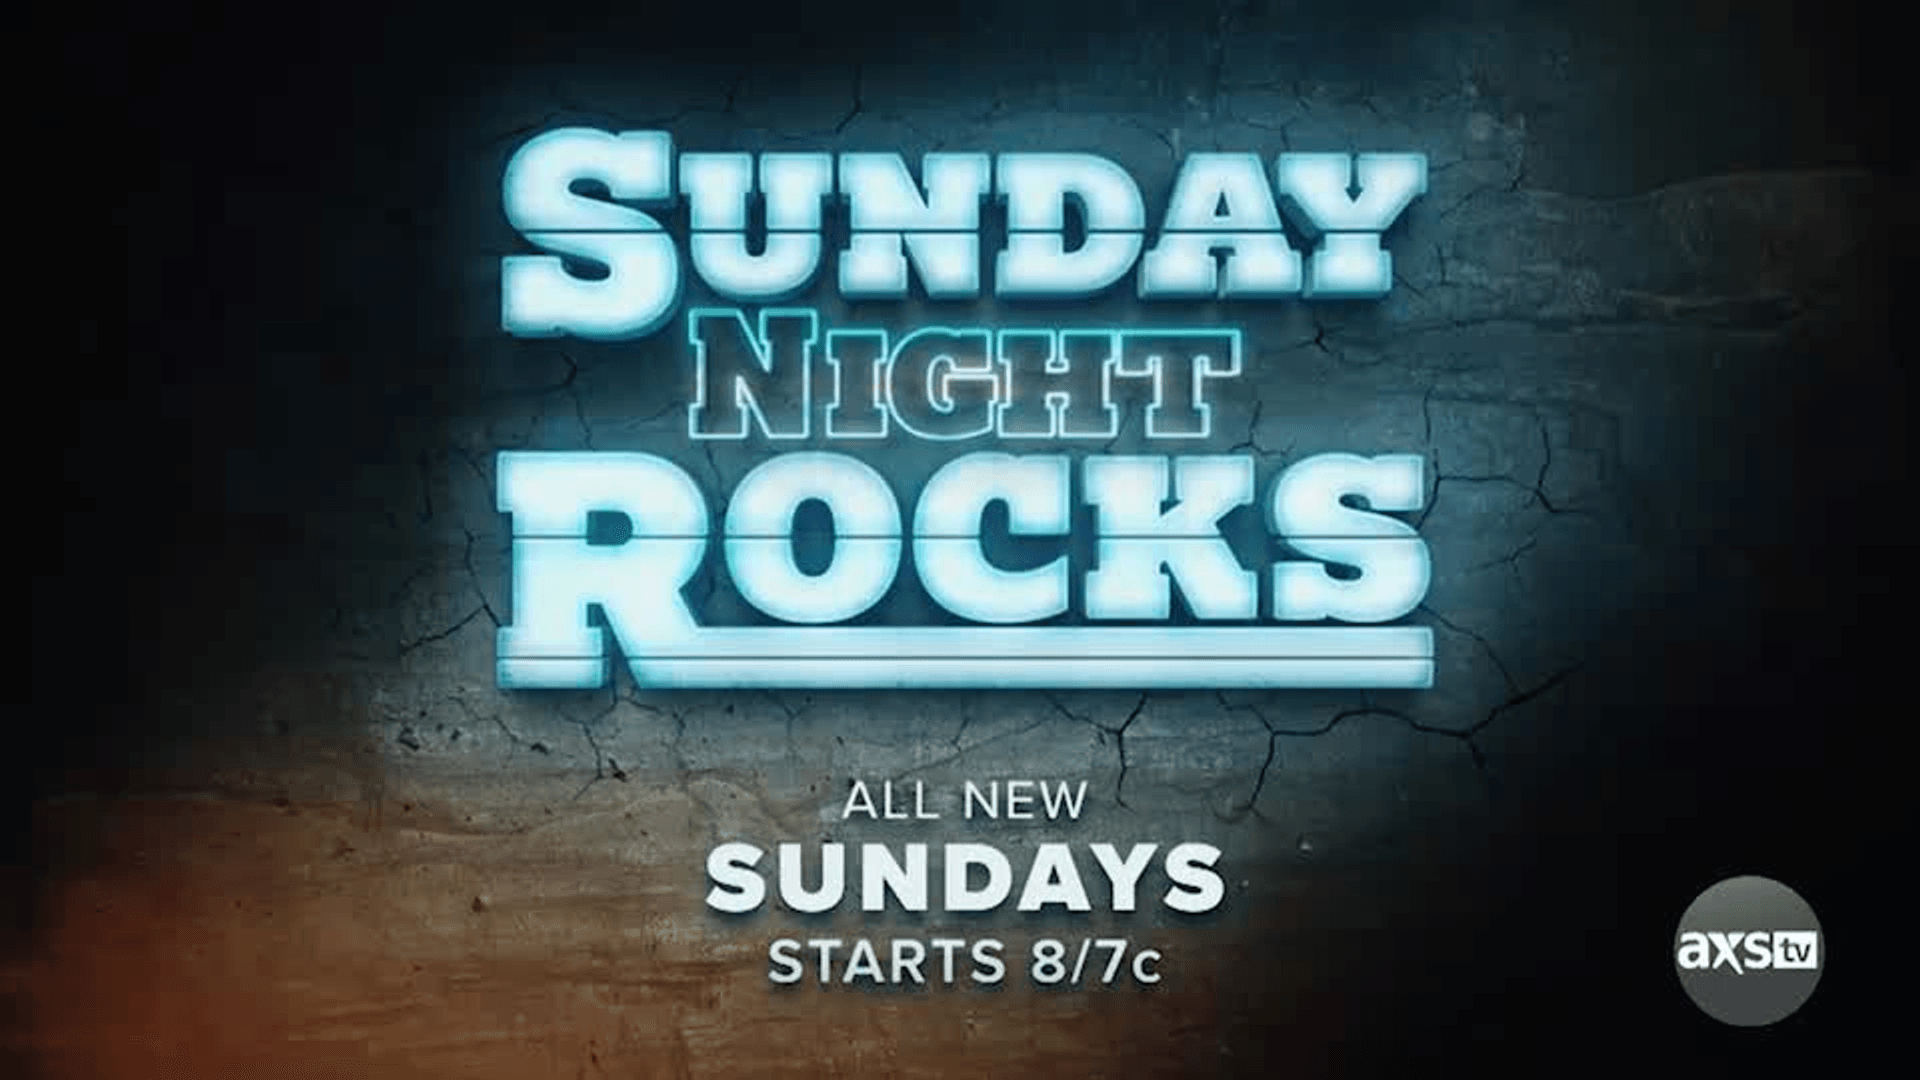 Sunday Night Rocks on AXS TV